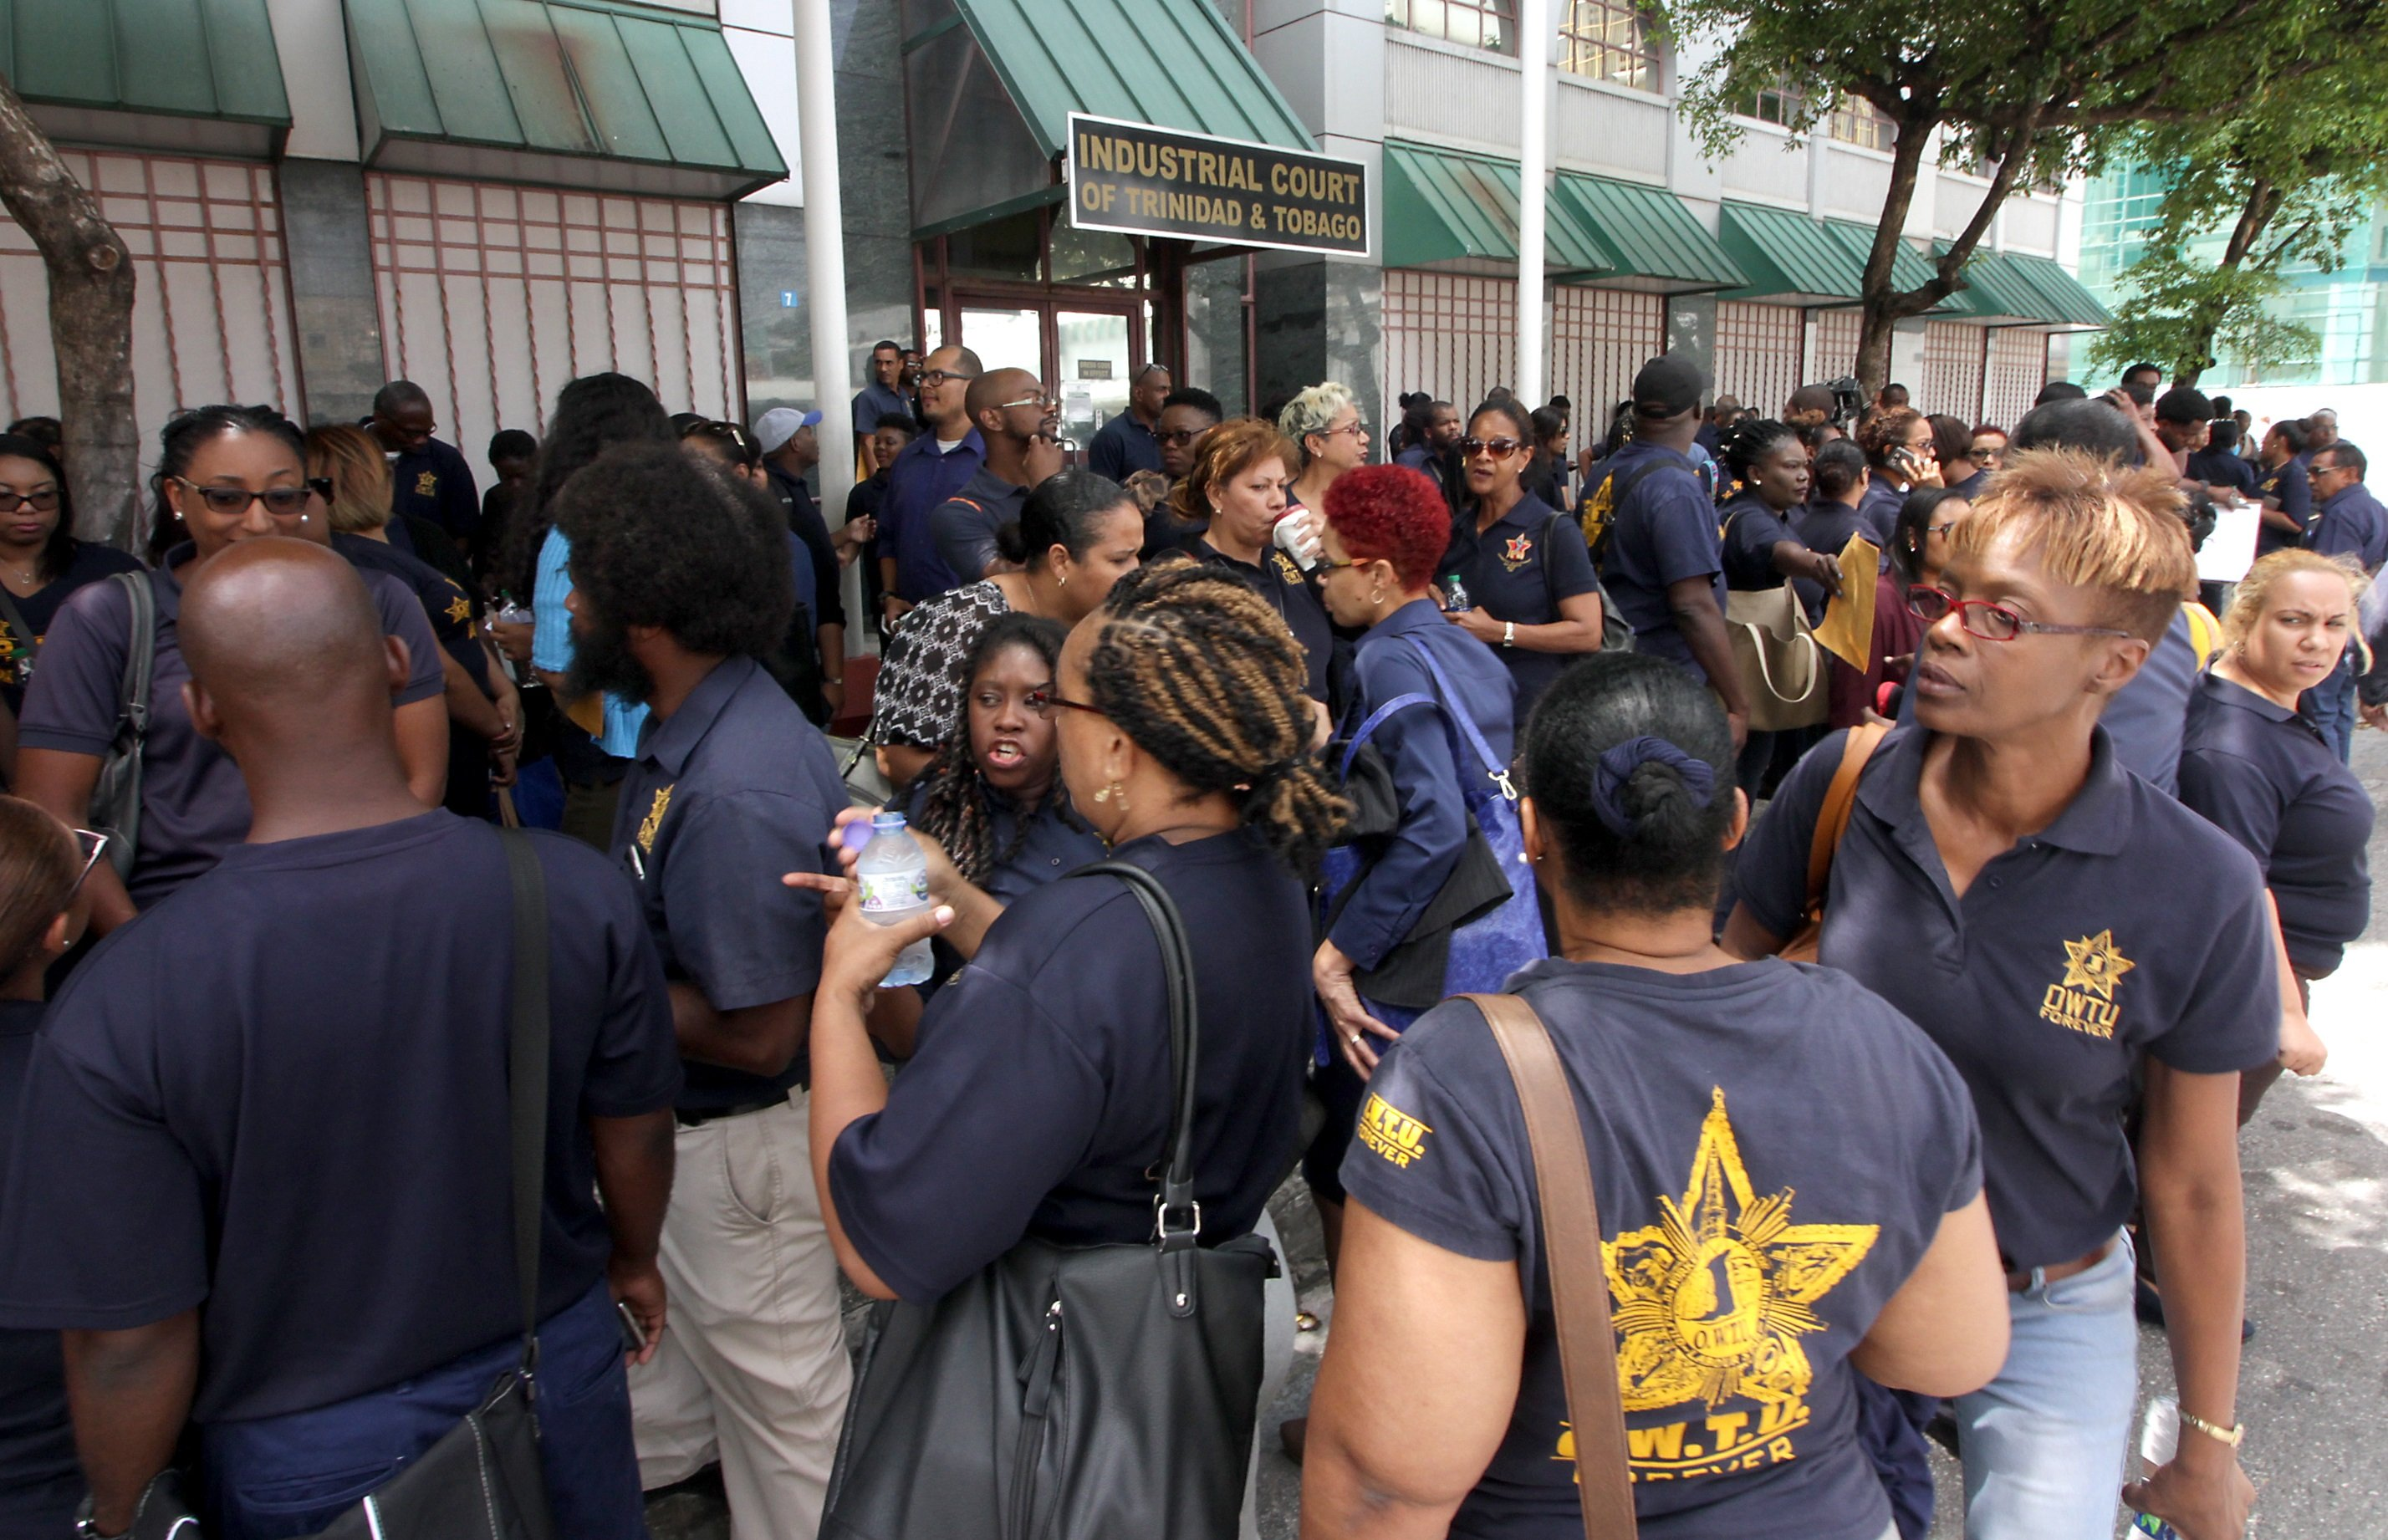 UTT workers outside the Industrial Court in Port of Spain on Monday. PHOTO BY ROGER JACOB